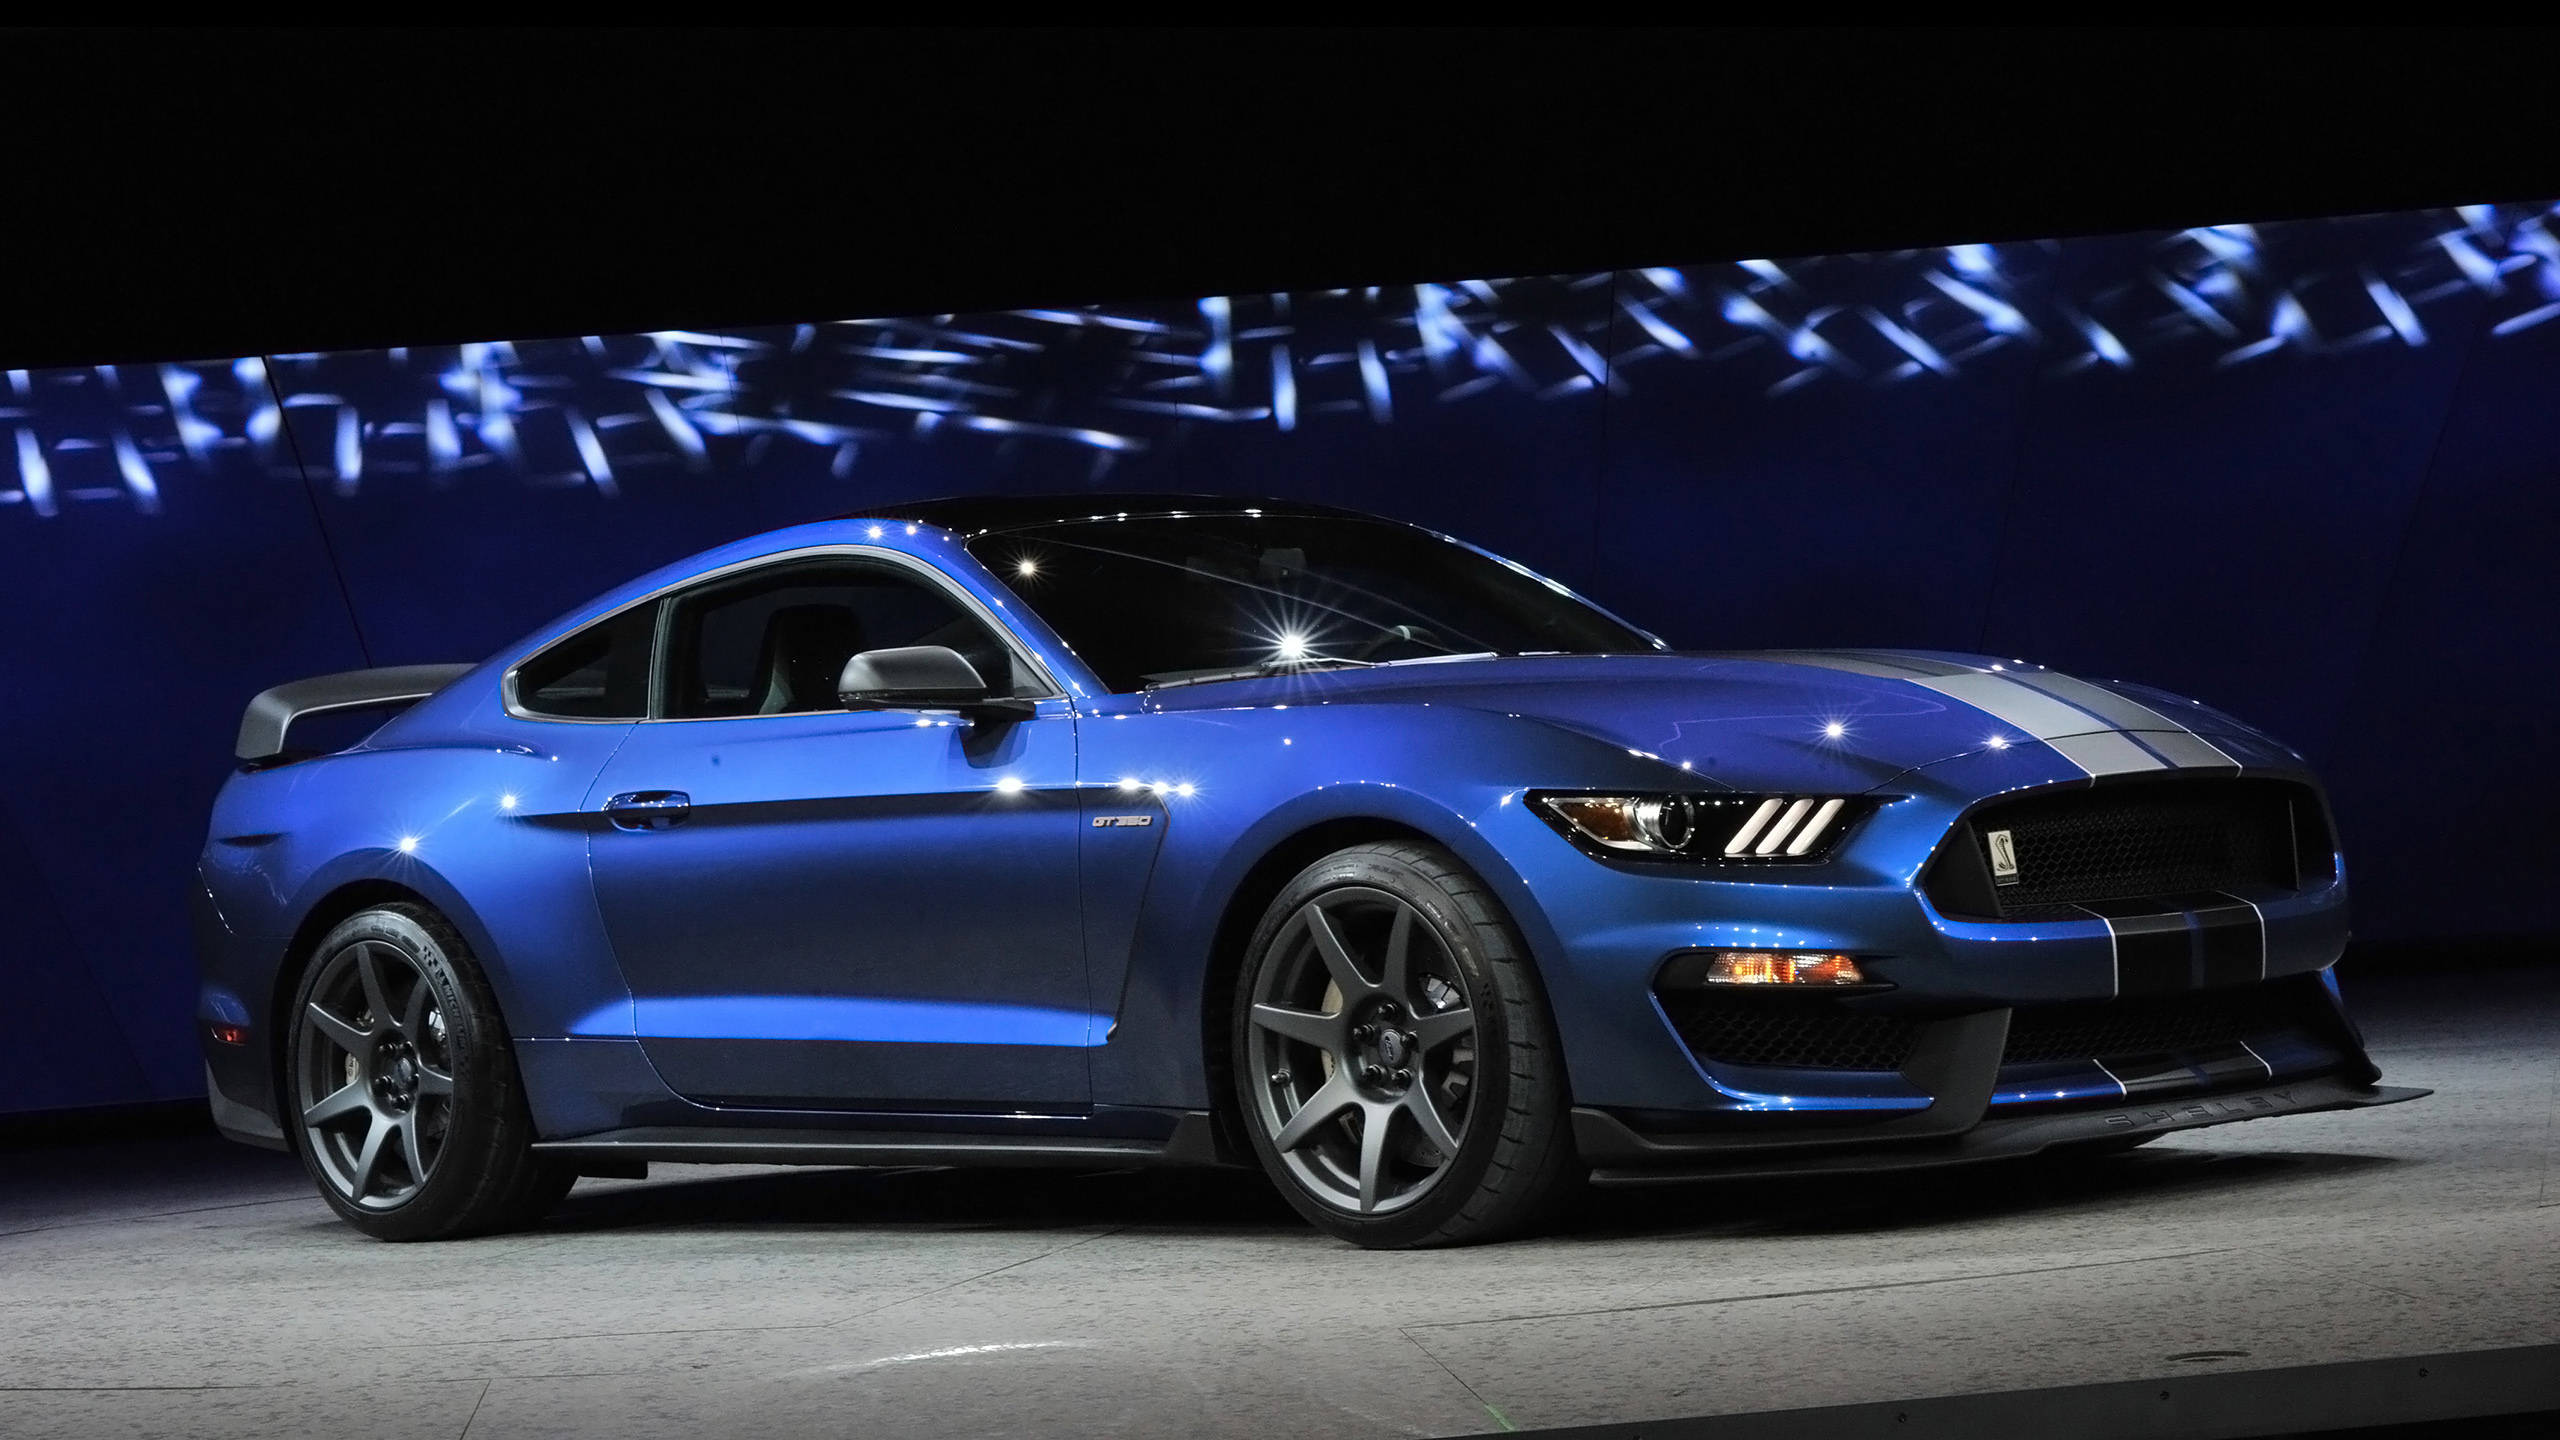 2560x1440 - Shelby Mustang GT 350 Wallpapers 14